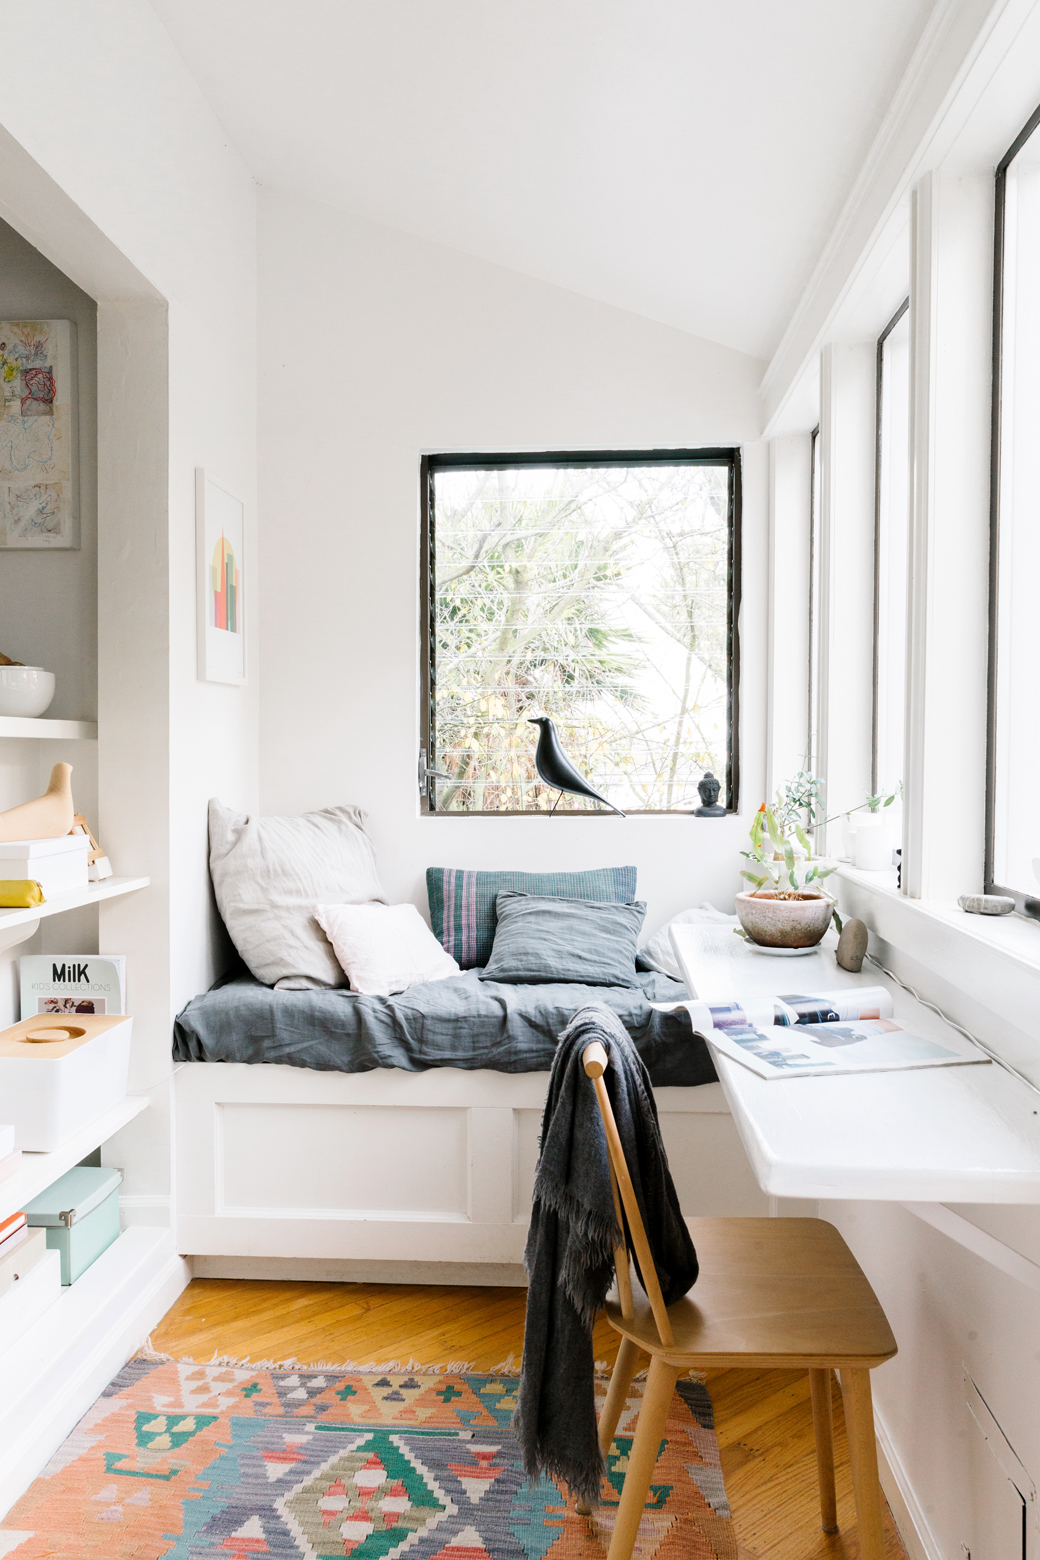 Uncategorized Clean Interiors clean clear laid back green and peach interiors decor8 so coastal boho minus the patchouli 60s vibe its just great breezy easy tactile lots of pretty tones